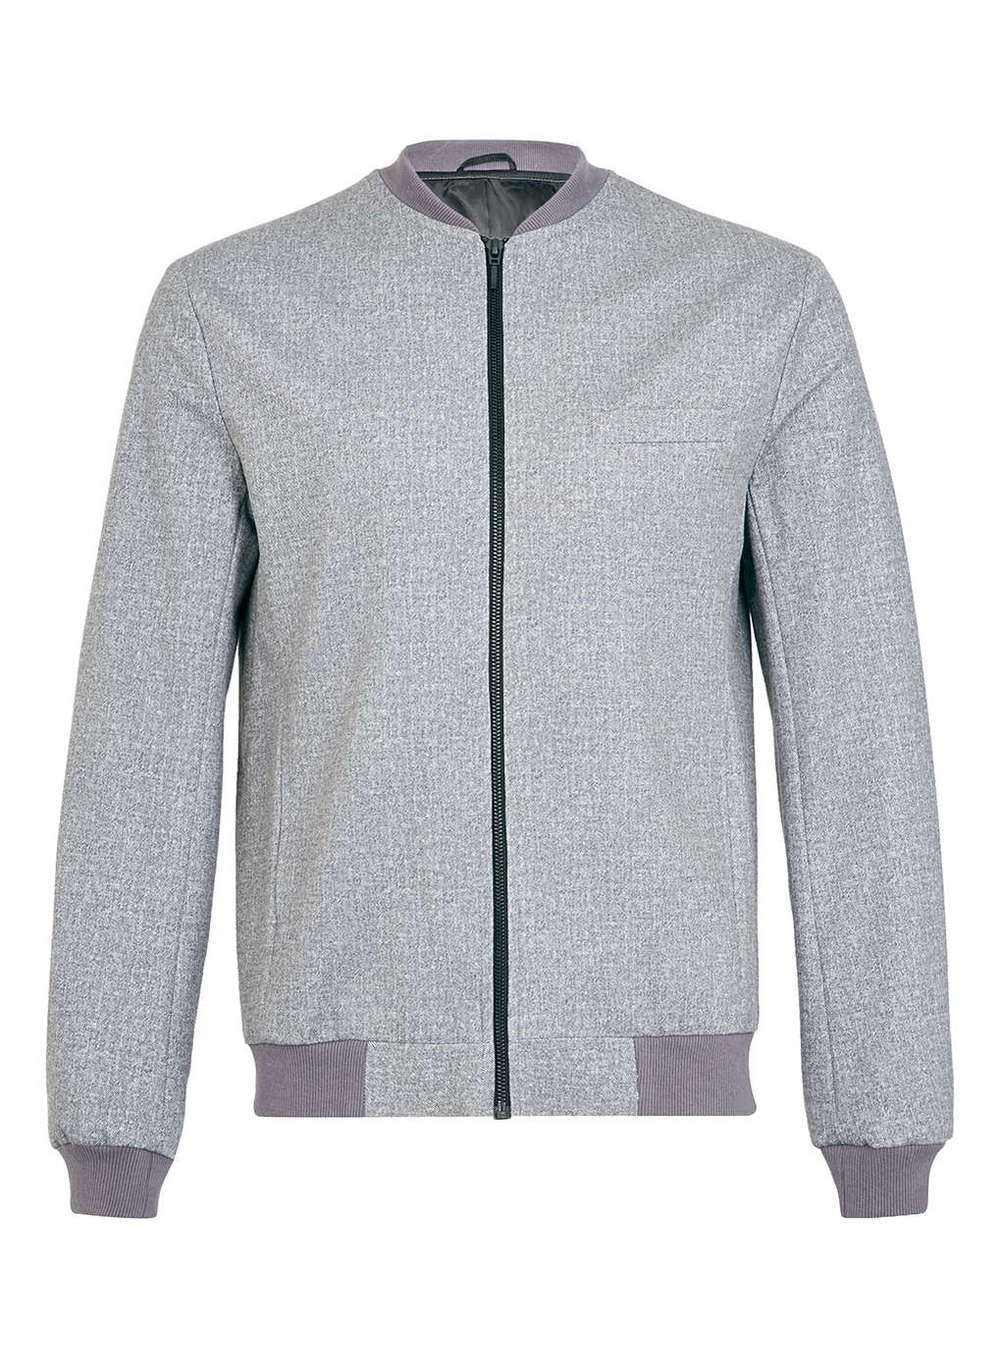 Oem High Quality Grey Jersey Bomber Jacket/custom Casual Grey ...